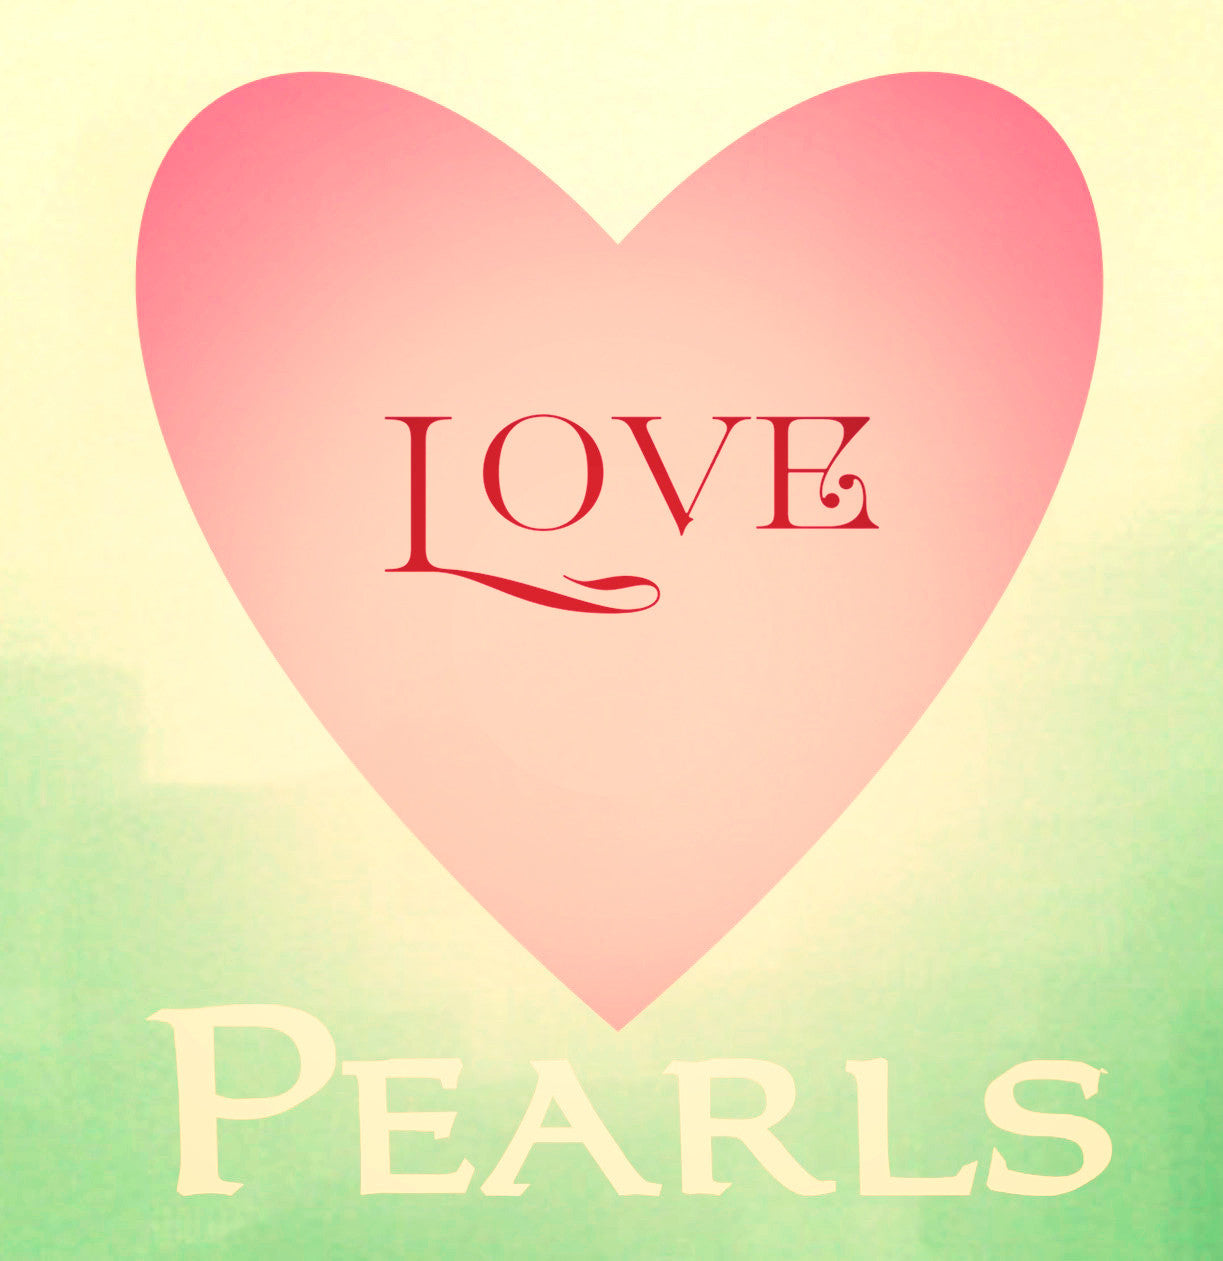 Pearls are Love!